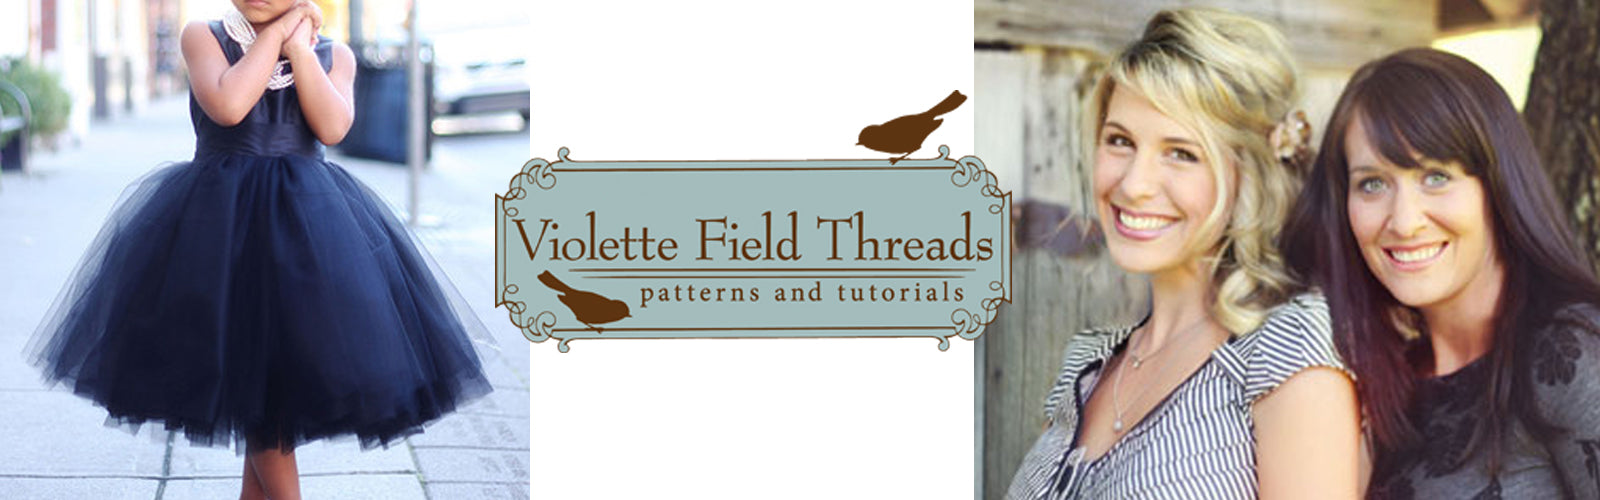 Violette Fields Threads modern sewing patterns on UpCraft Club 8d541e7ba2a